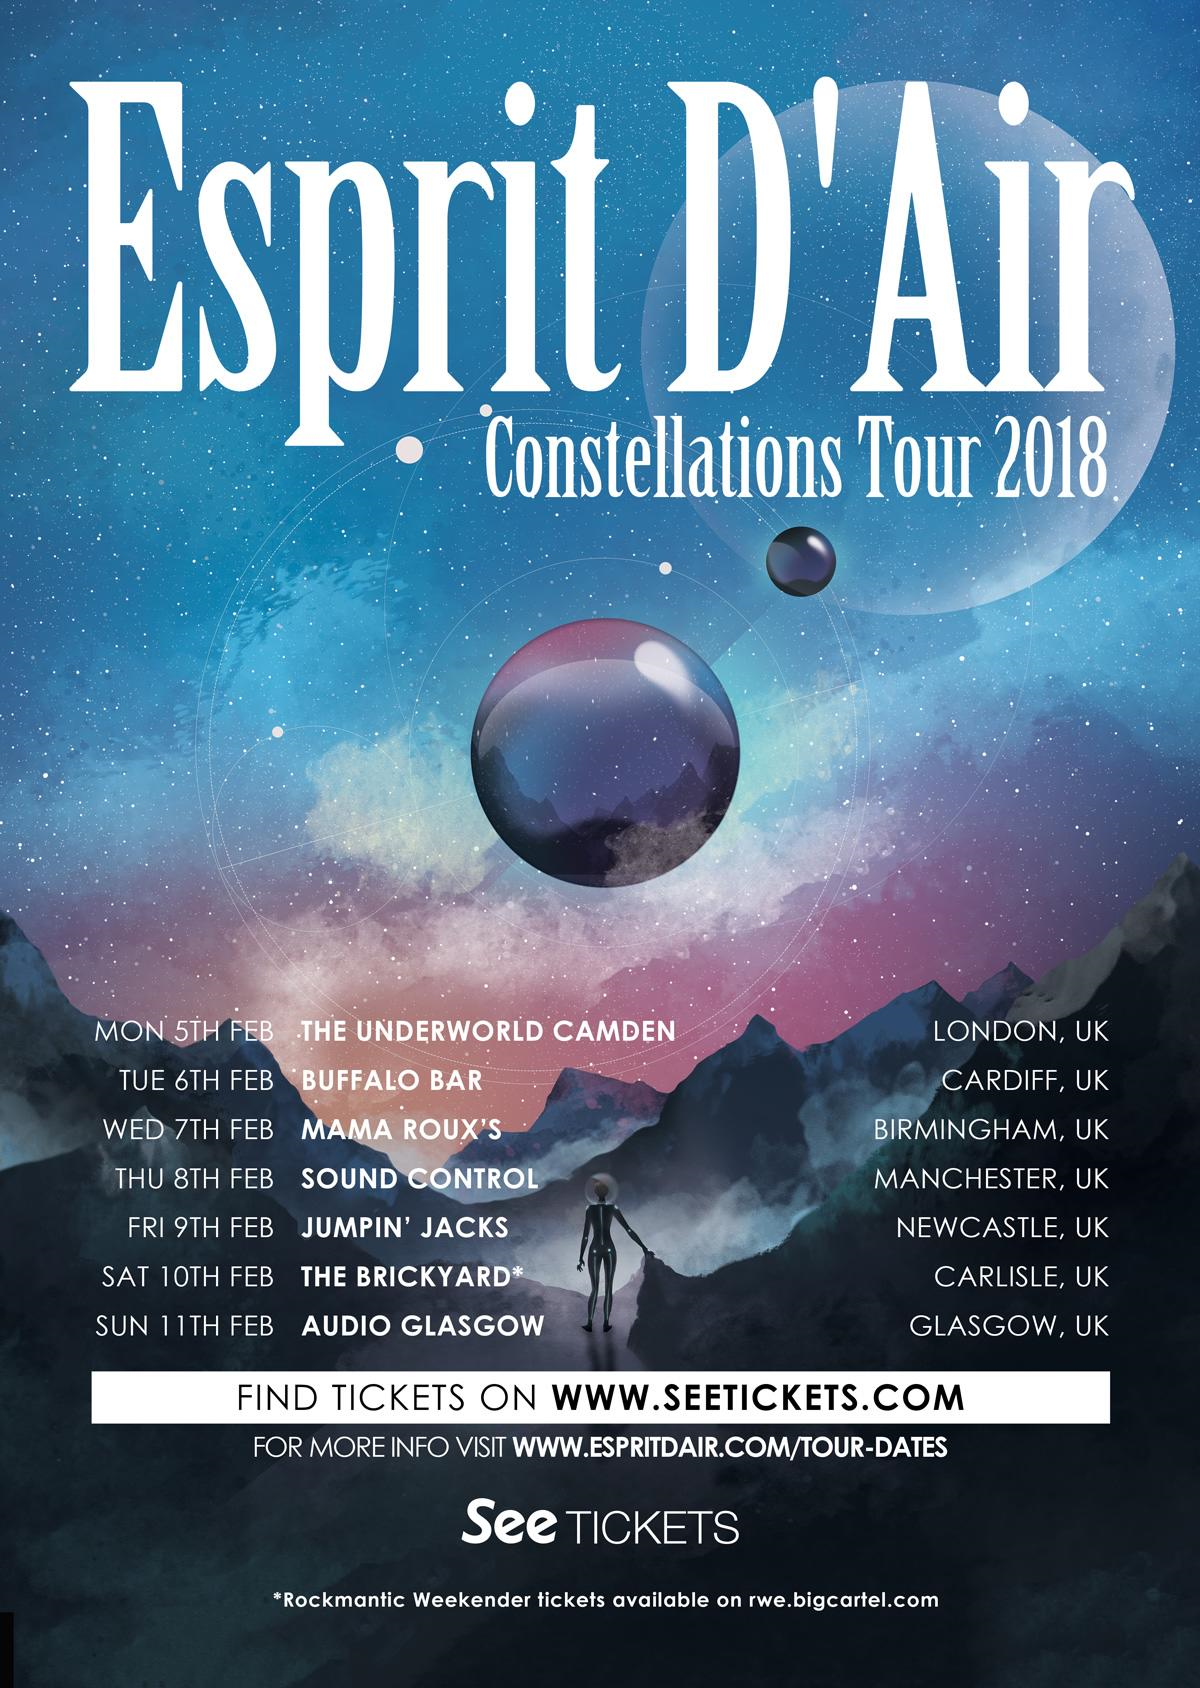 esprit-d-air-tour2018.png